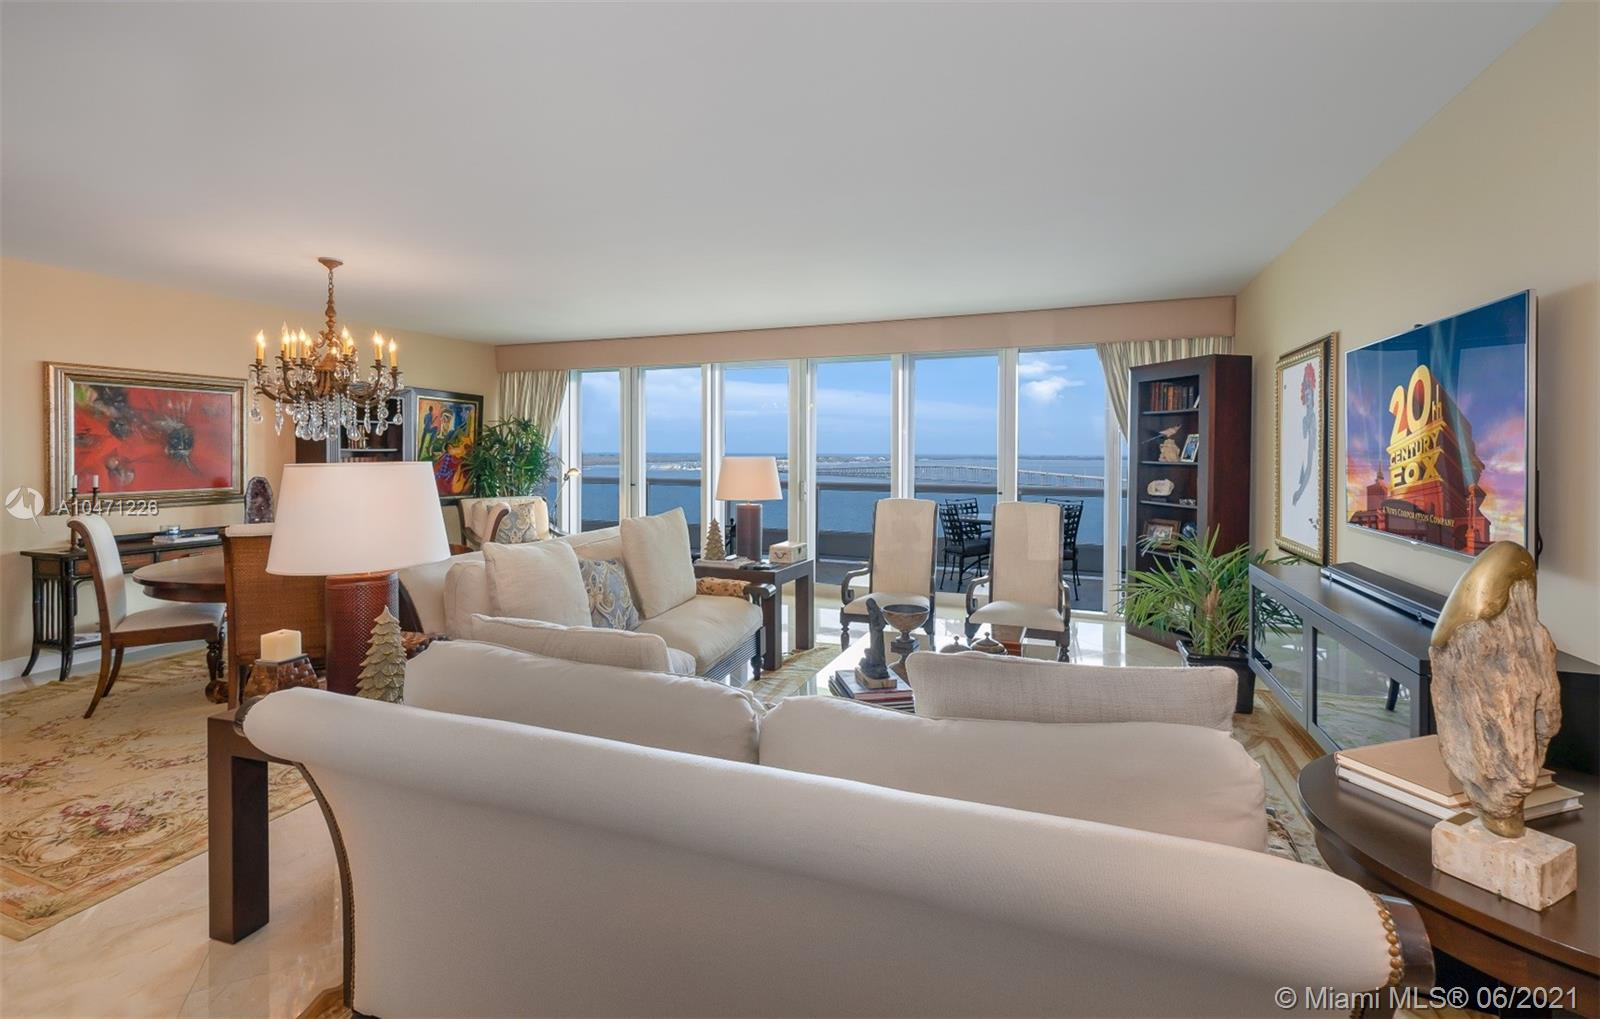 "SPECTACULAR RESIDENCE ON DESIRABLE ""03 LINE"" SHOWCASING: A TOTAL BAYFRONT EXPOSURE, 2 BEDROOMS AND 2.5 BATHROOMS, 2,180 SQFT OF LIVING AREA, PRIVATE ELEVATOR & FOYER, GLASS TO CEILING WINDOWS,